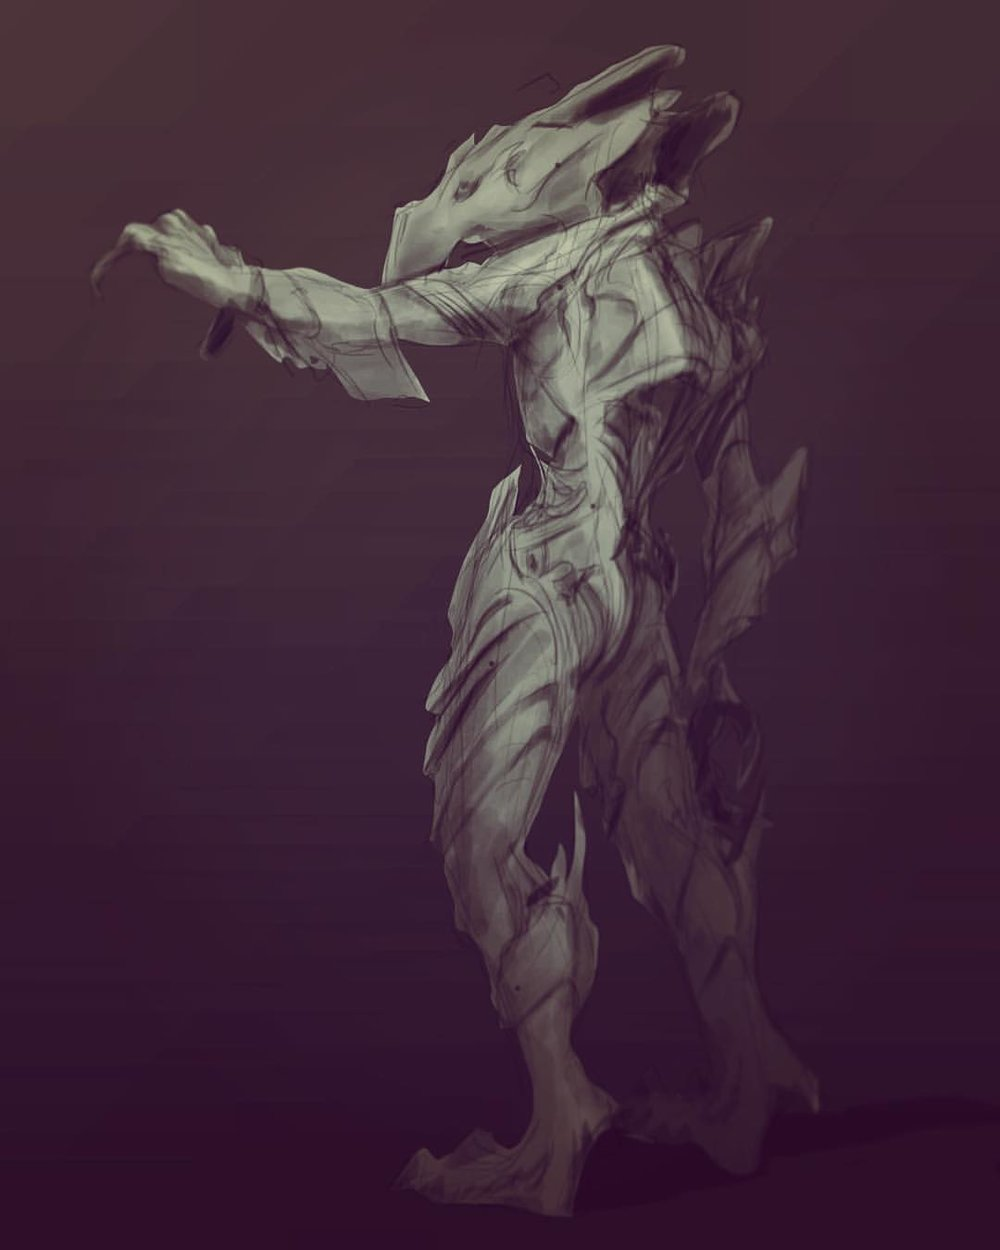 #monster #creature #alien #horror #sketch #sketching #painting #illustration #art #arthabit #insect #drawing #draweveryday